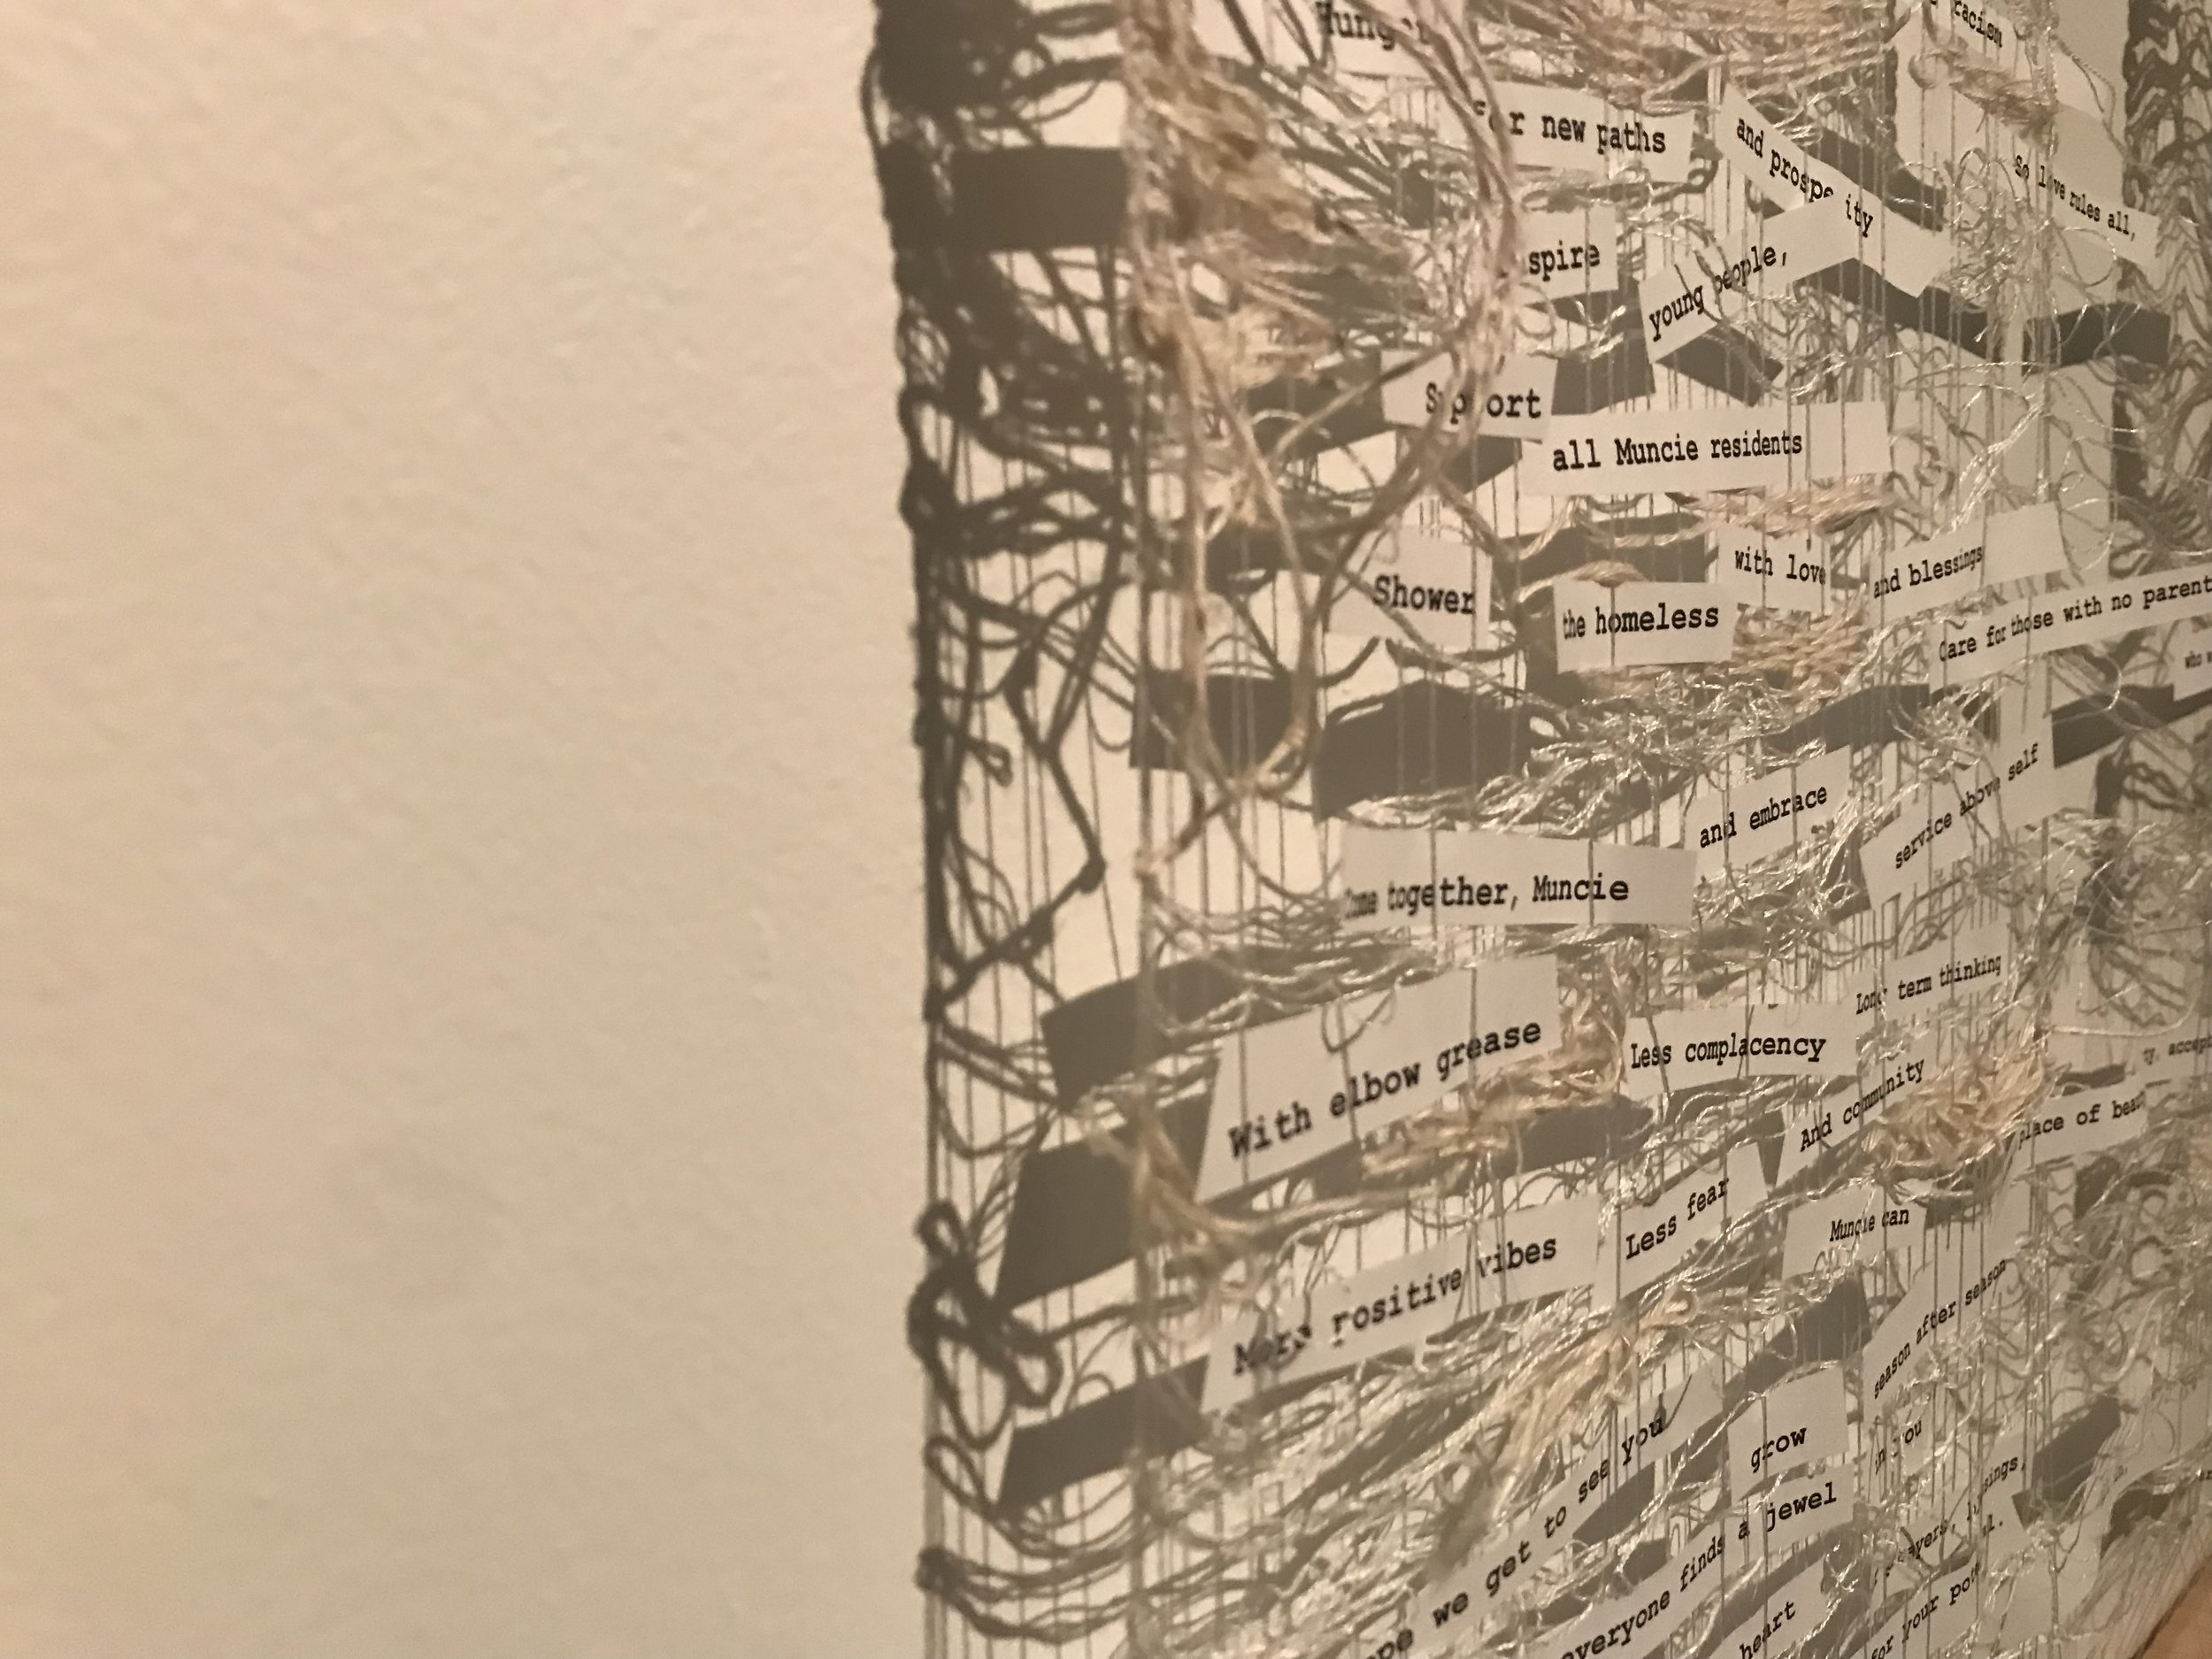 Woven Hopes, A Song to Muncie,  detail (2018)   wood, silk, stainless steel, hemp, paper, ink  36 x 24 x 1in